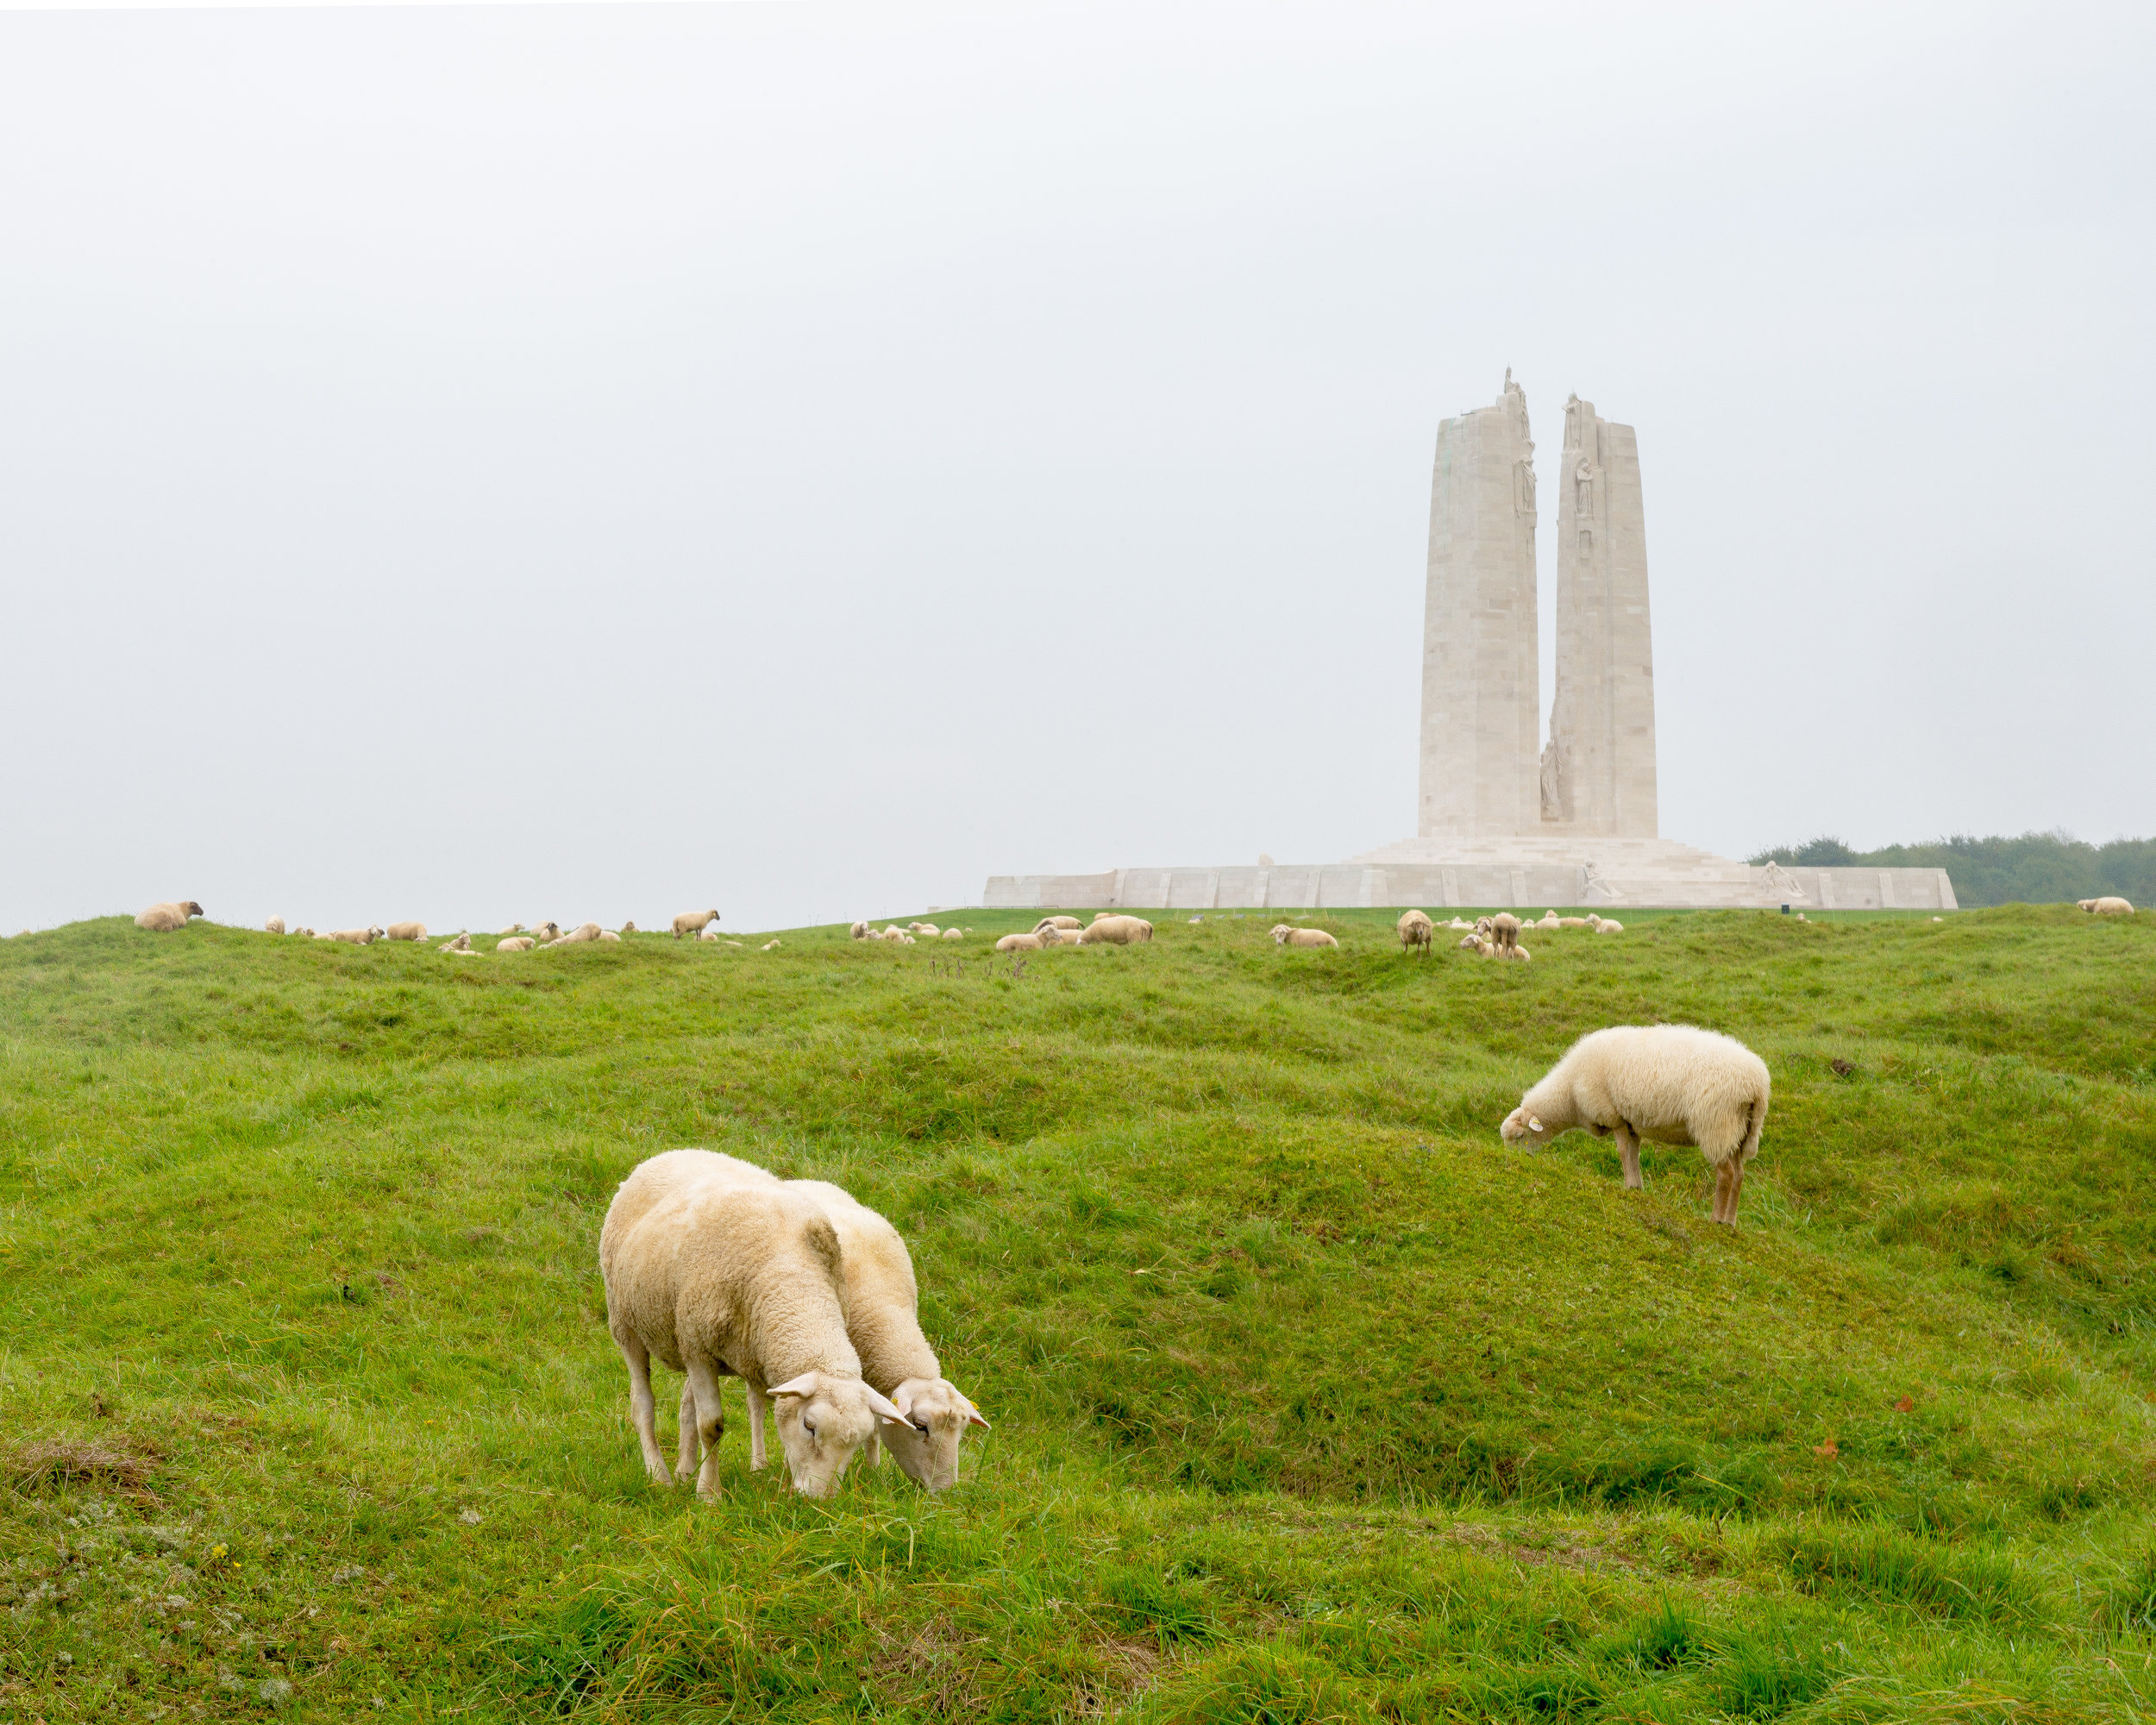 Monument at Vimy, France.   Surrounded by the battlefield, still marked by the bombing, only sheep graze in the uncleared no-mans land.